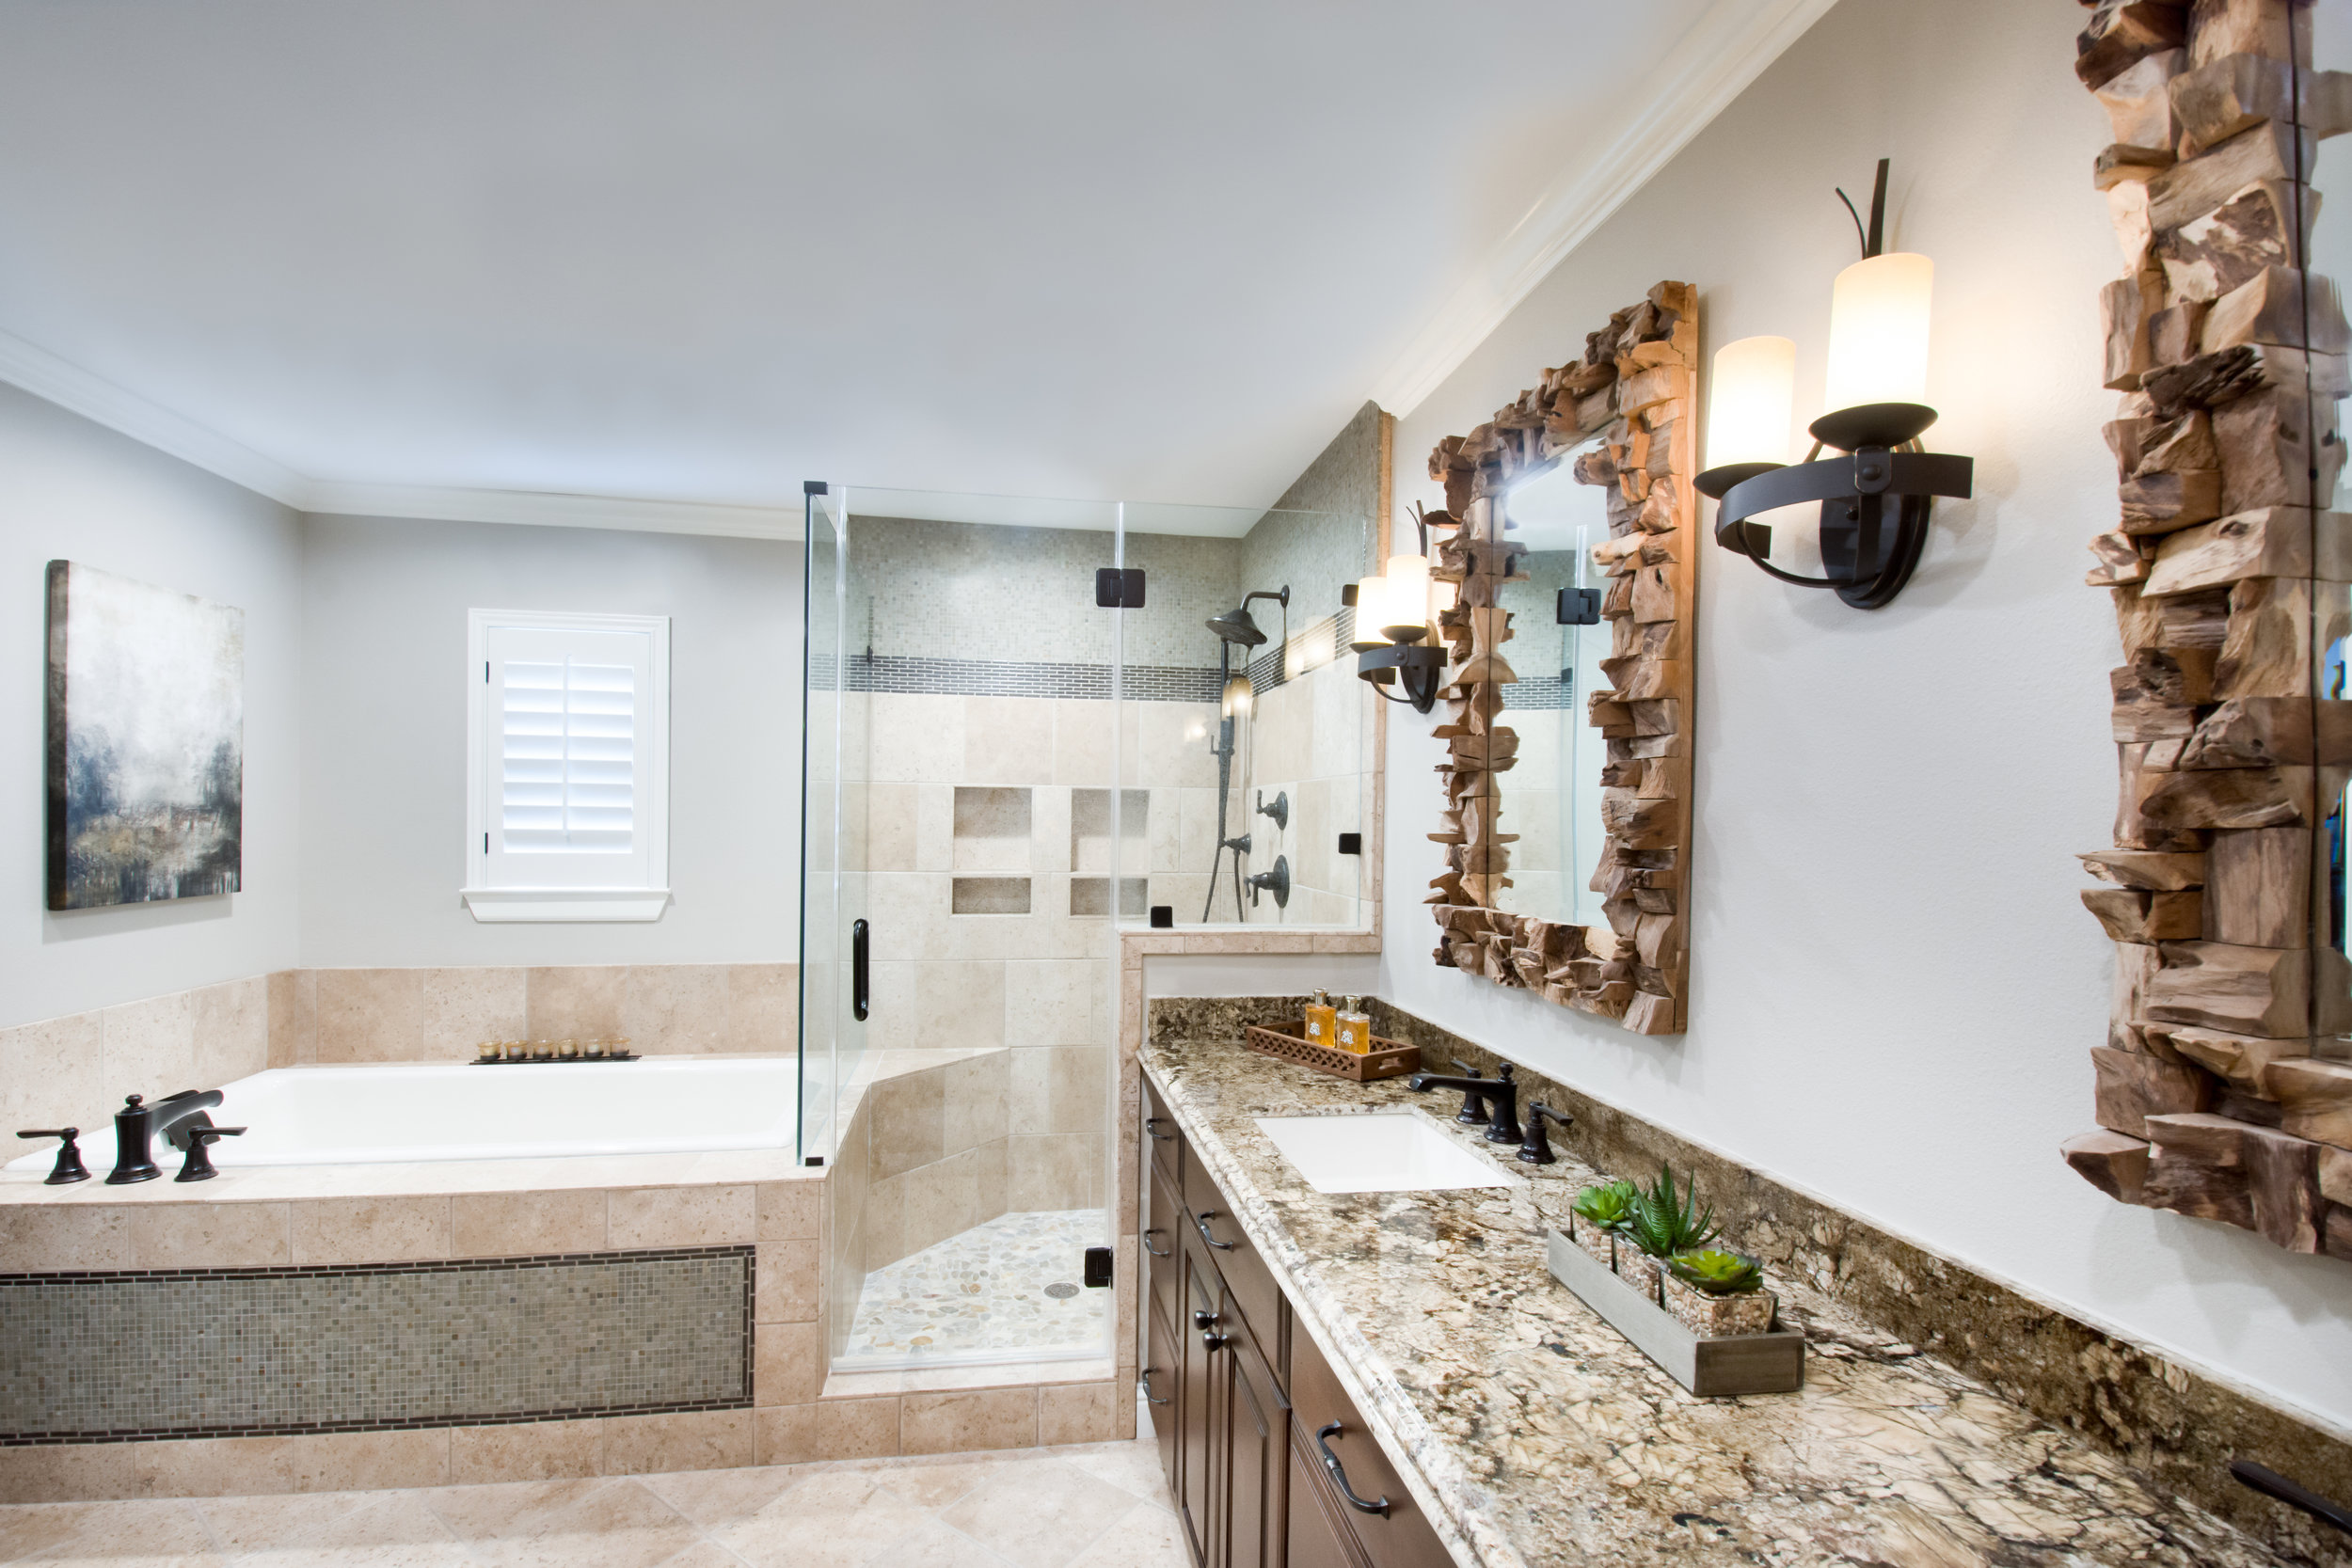 bathroom cabinets 4.jpg